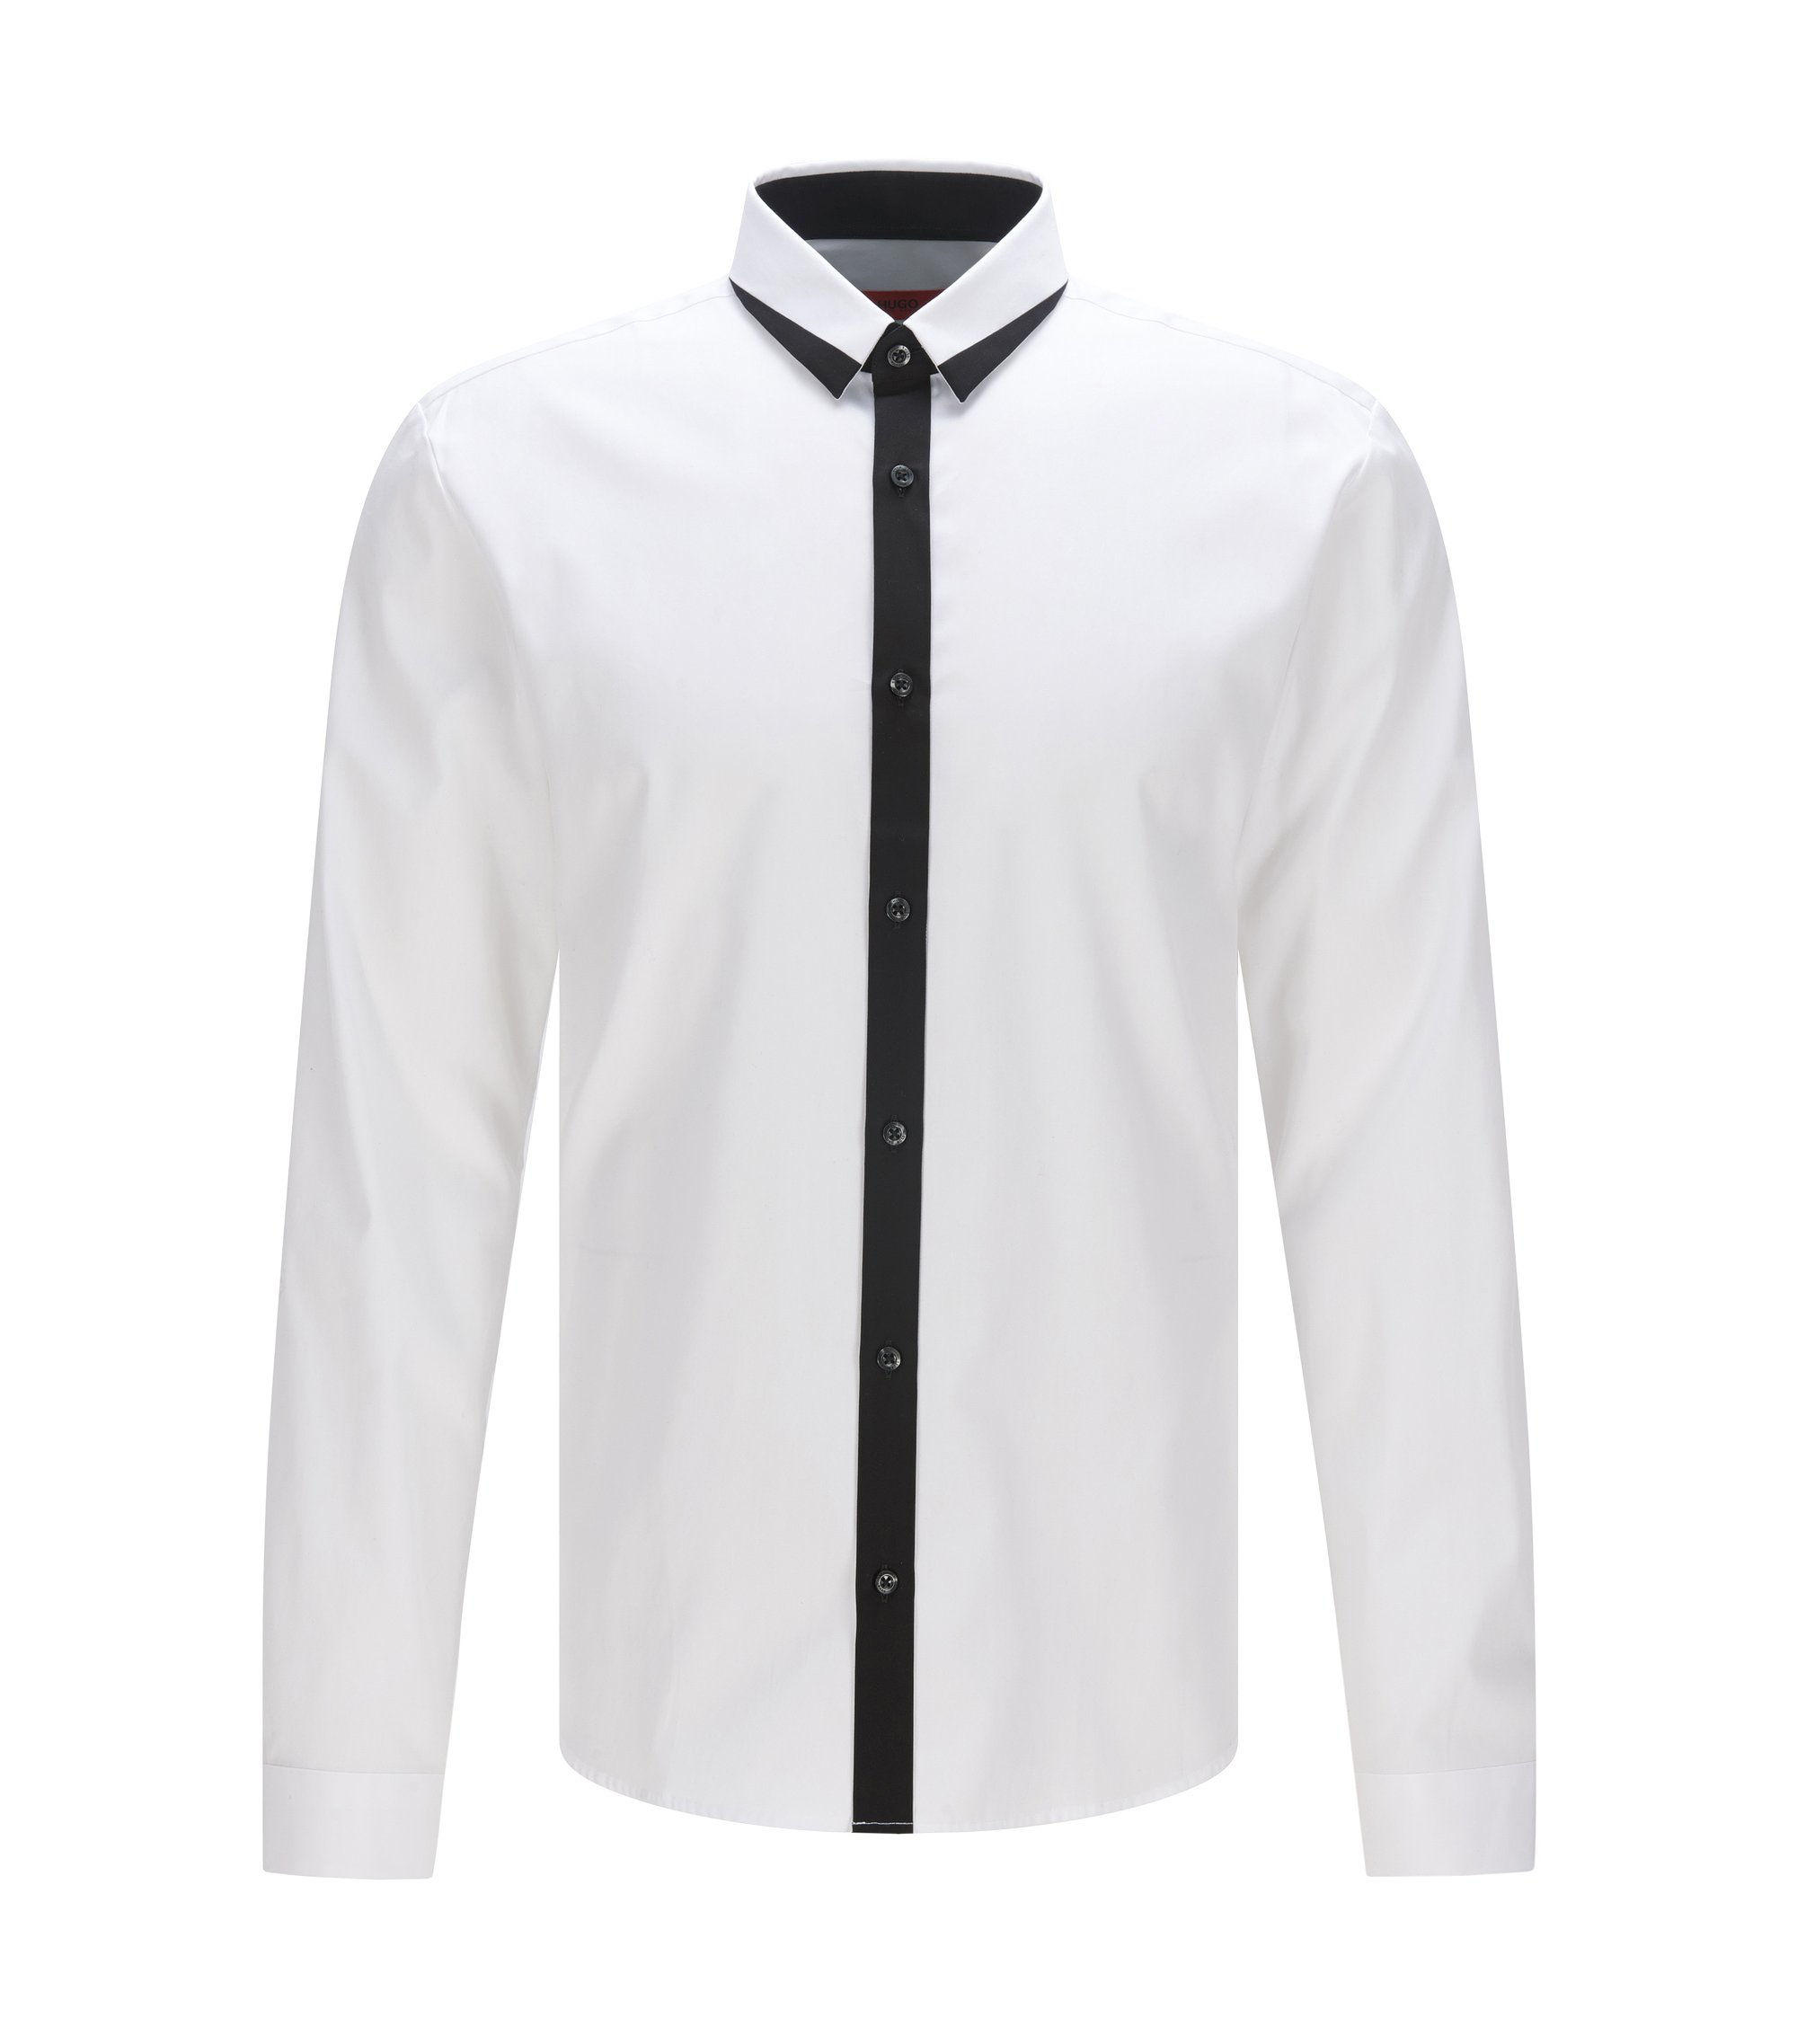 Trimmed Cotton Button Down Shirt, Extra Slim Fit | Egberto, Open White